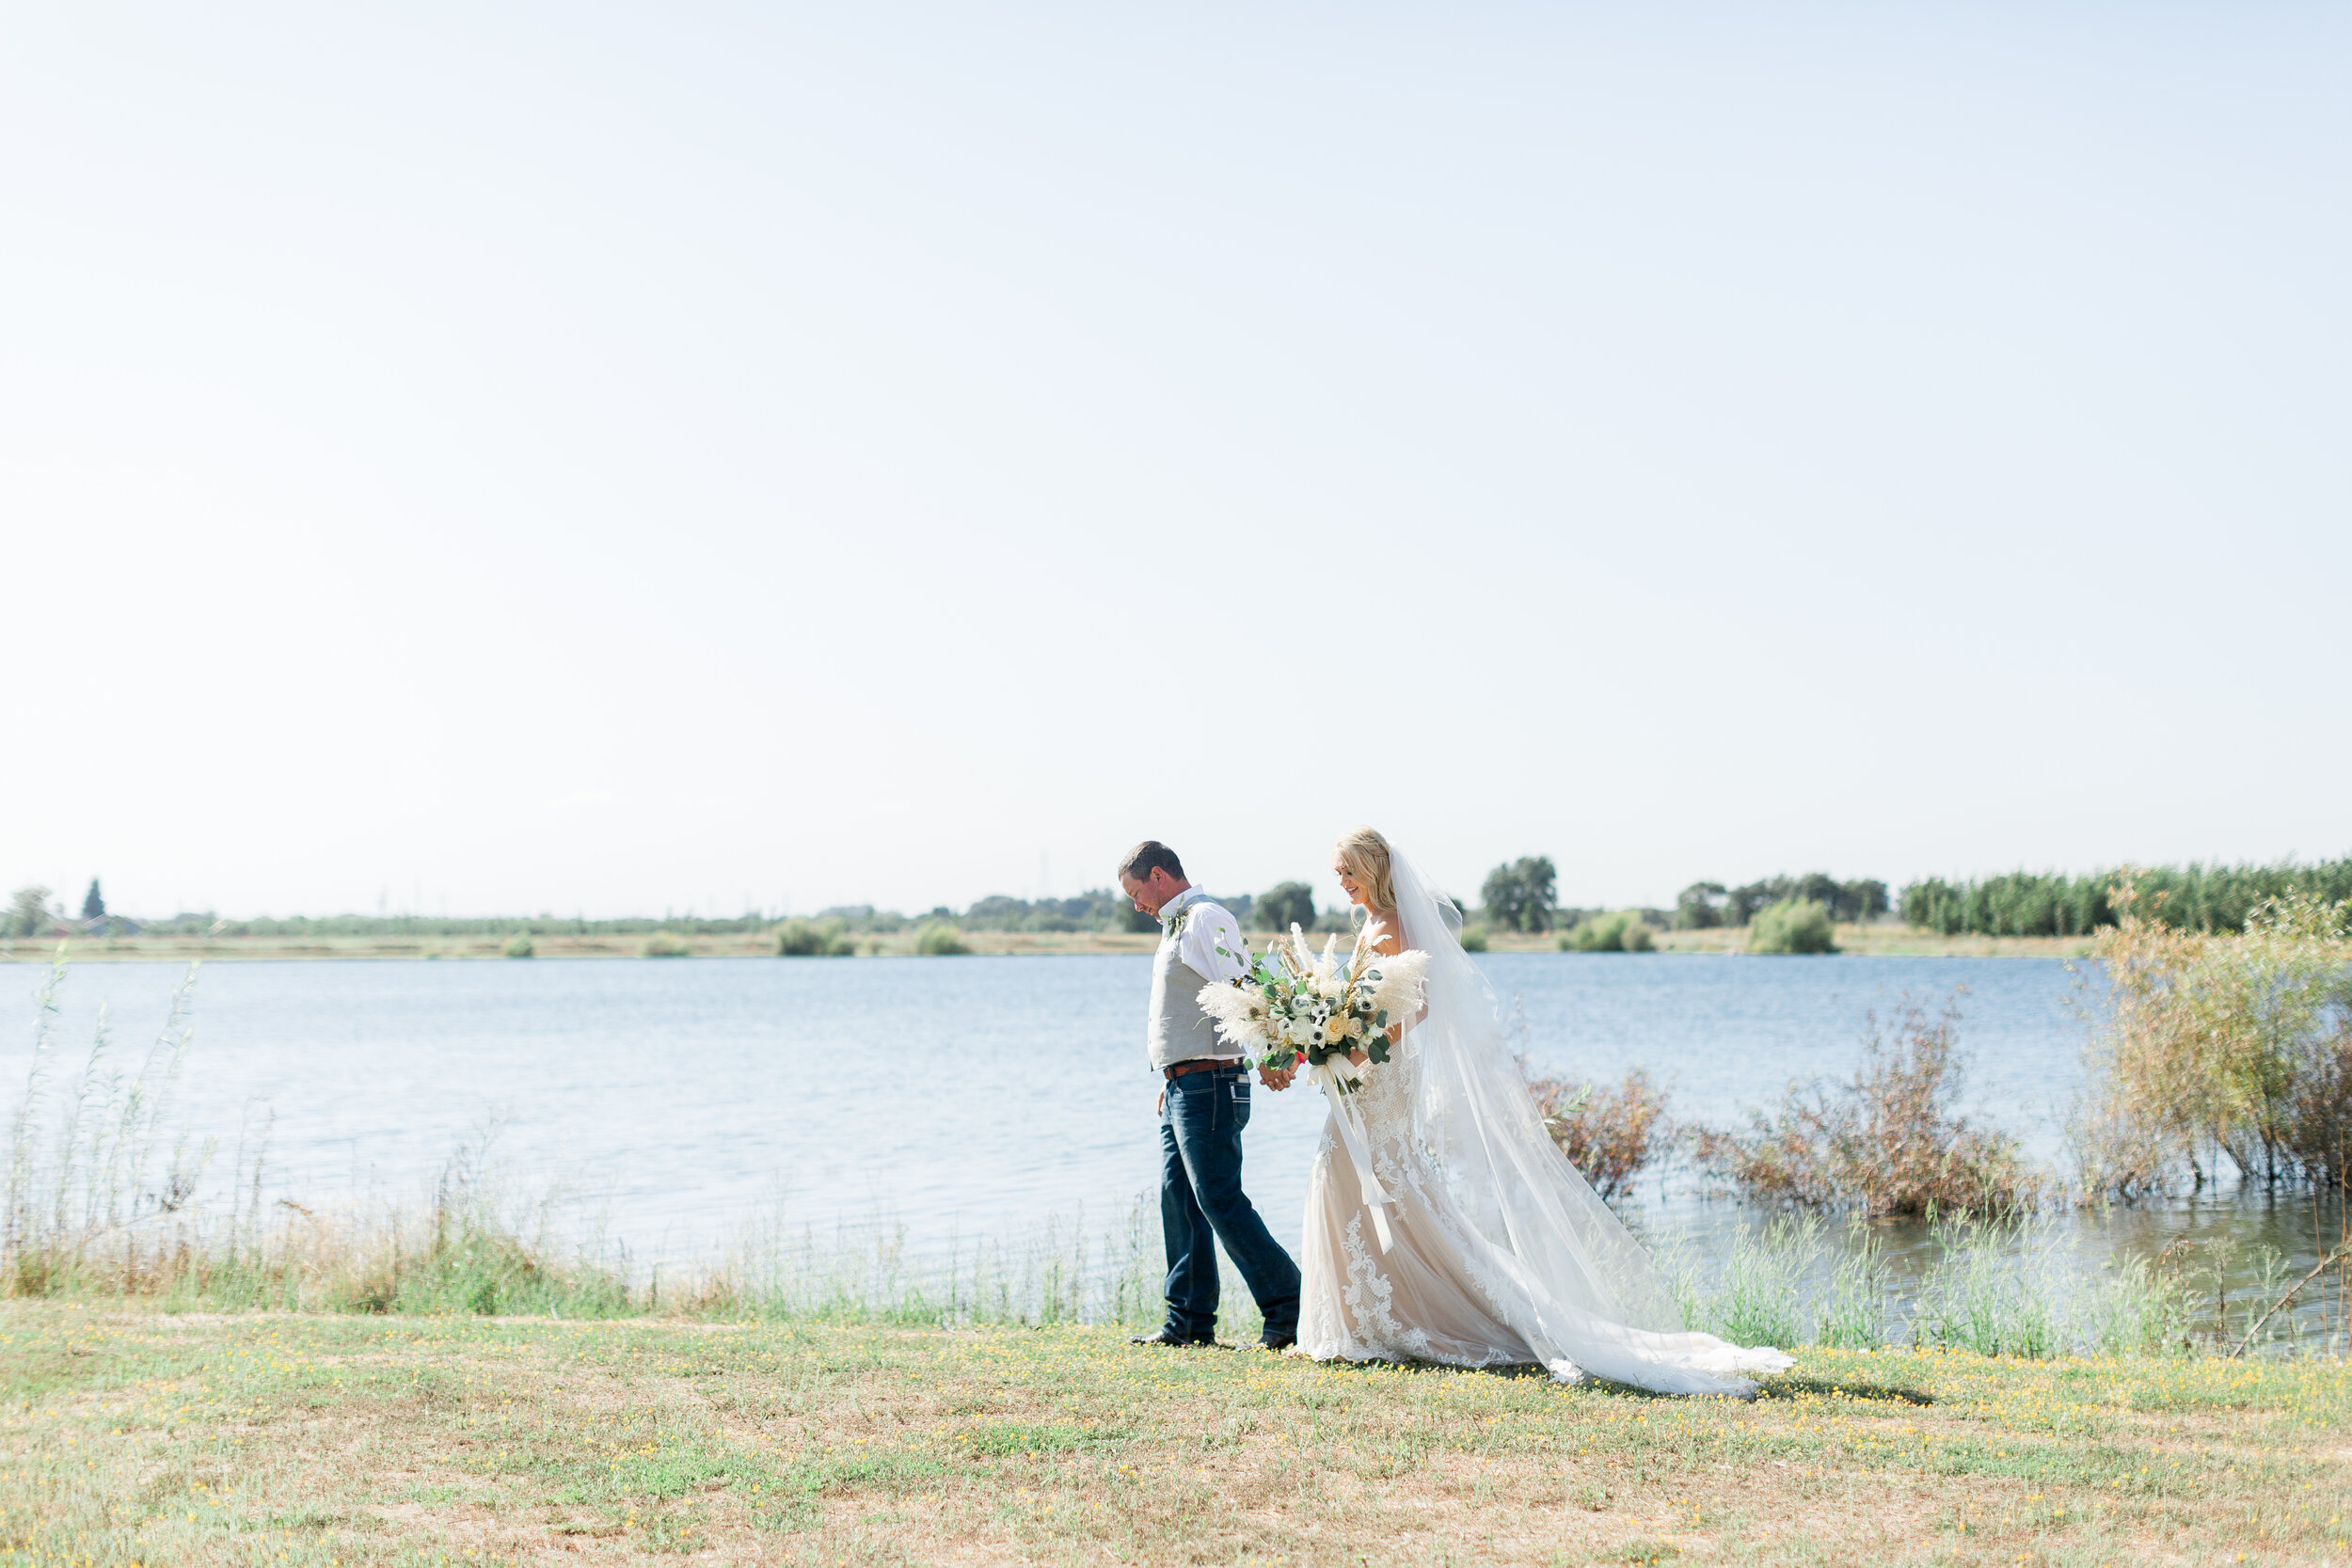 bride-and-groom-photos-at-a-lake-in-Northern-California.jpg